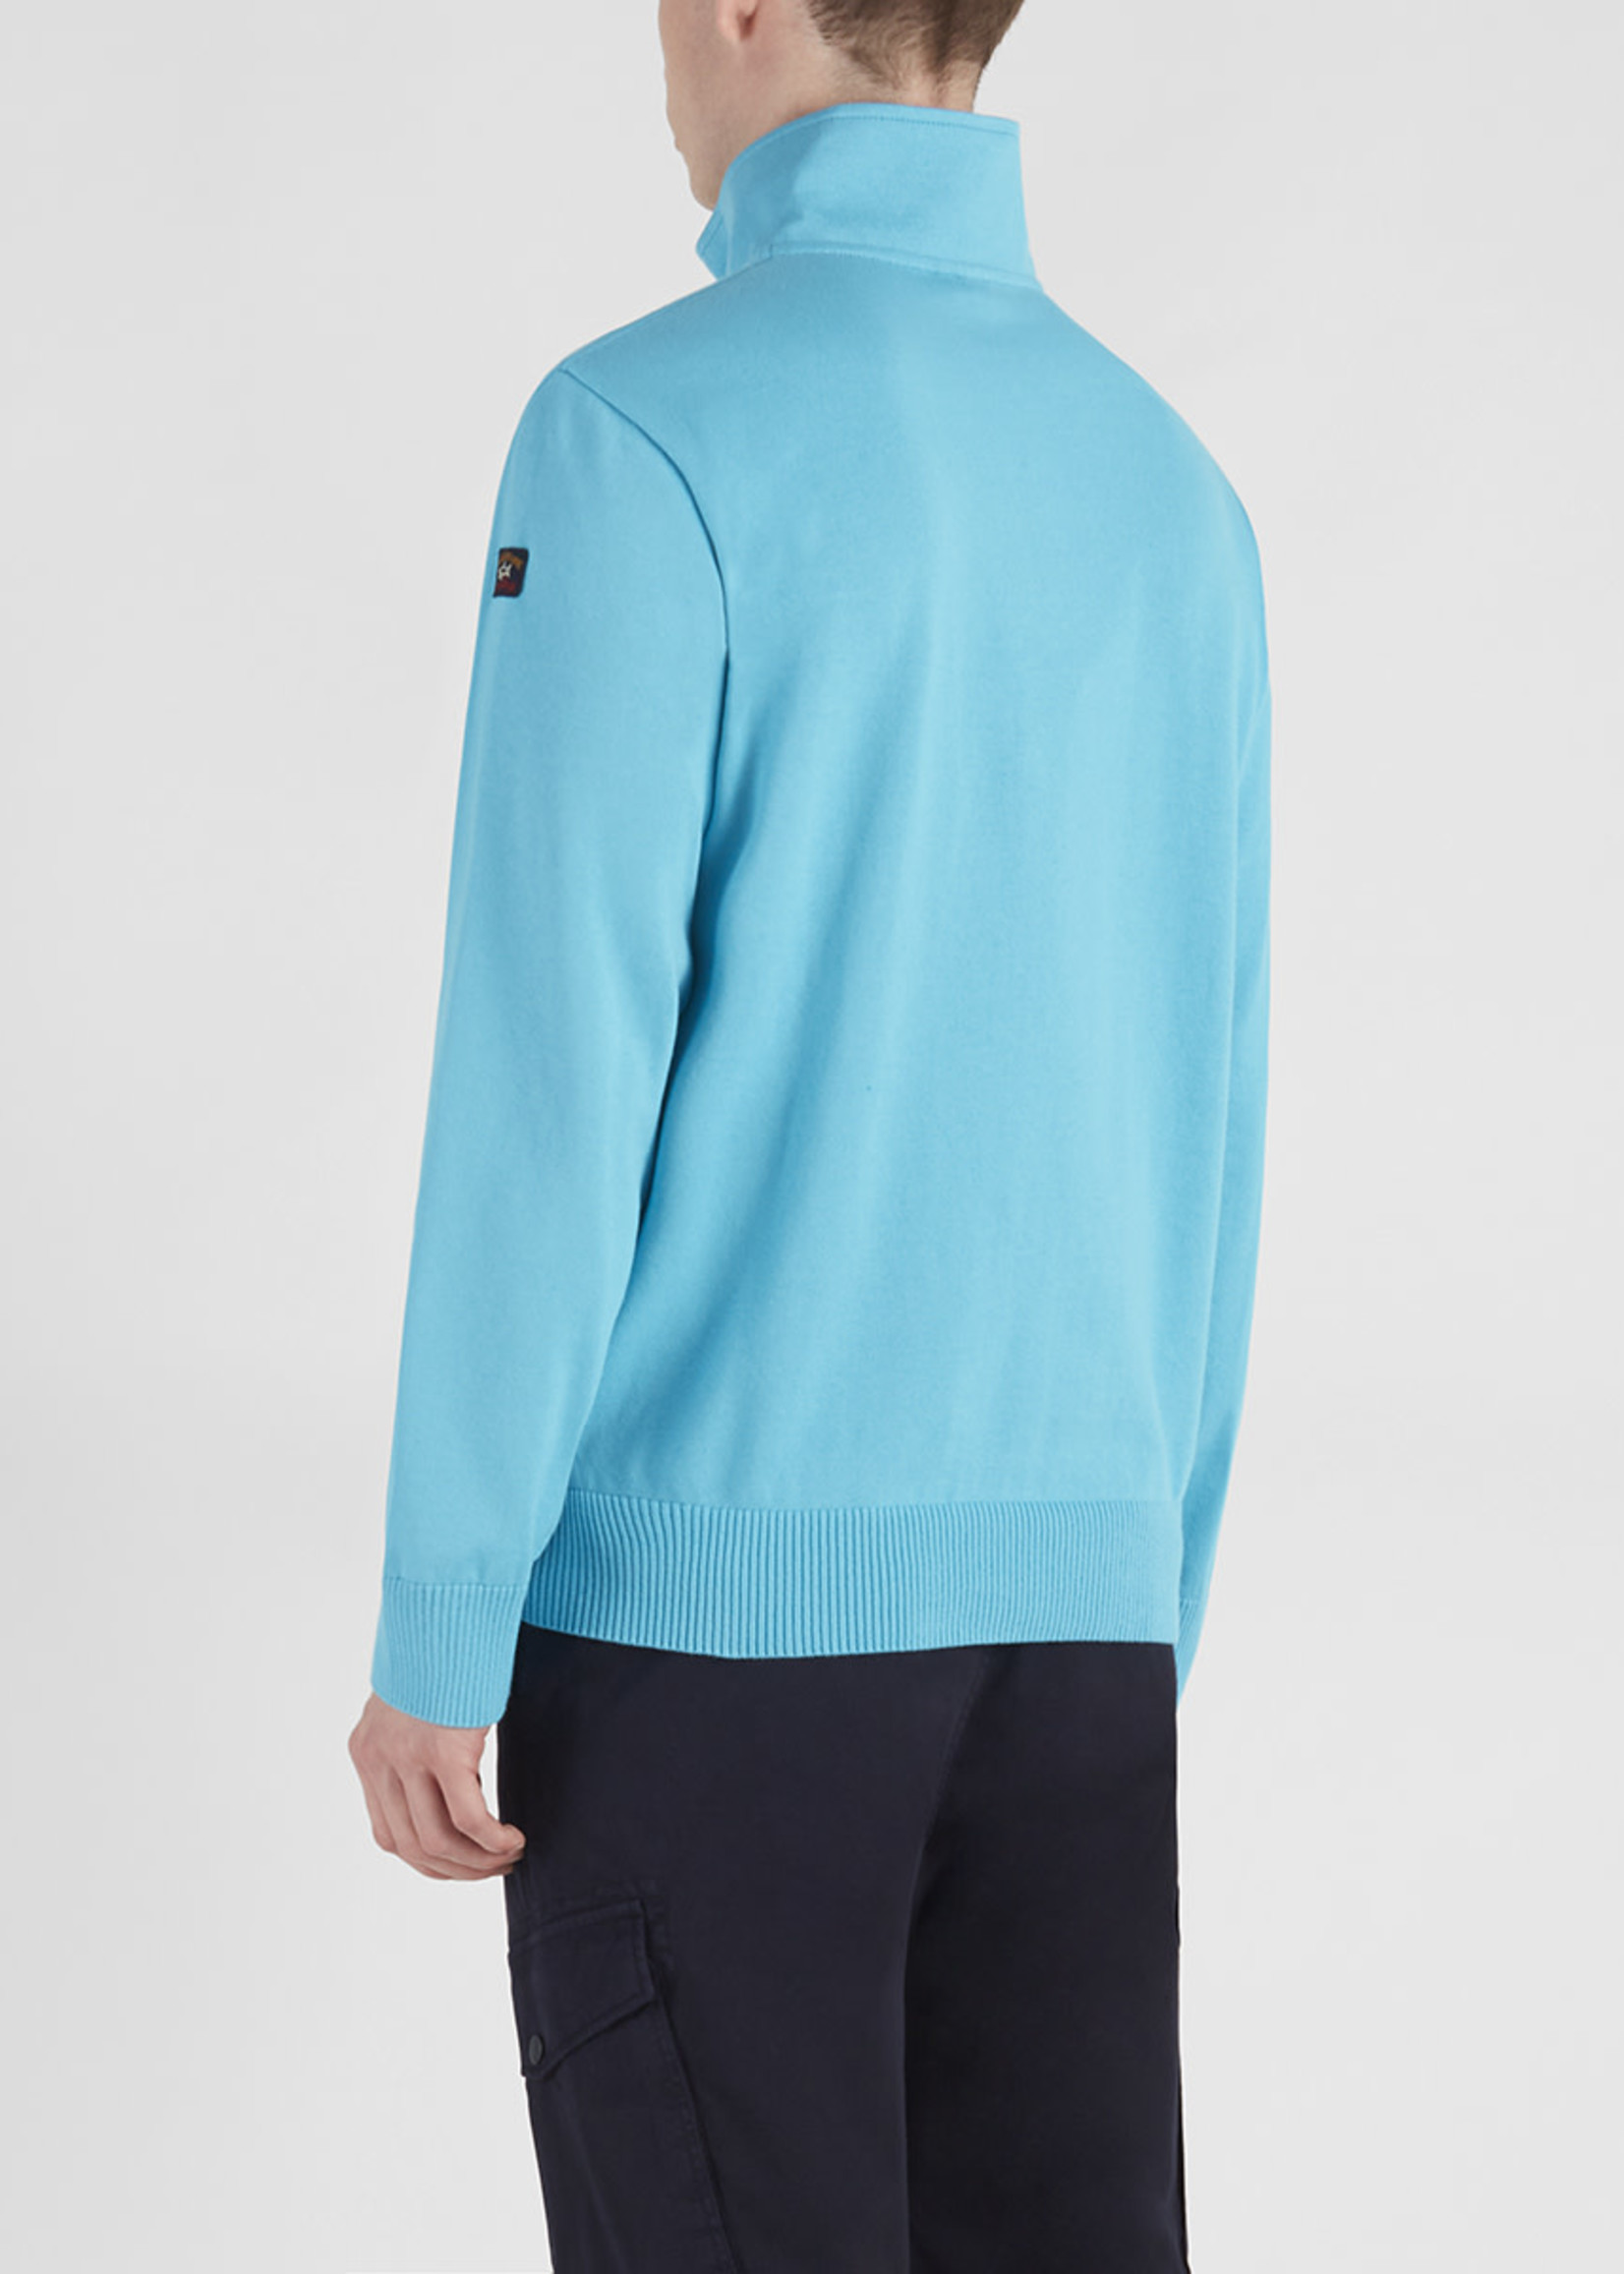 MEN'S KNITTED SWEATER C.W.COTTON